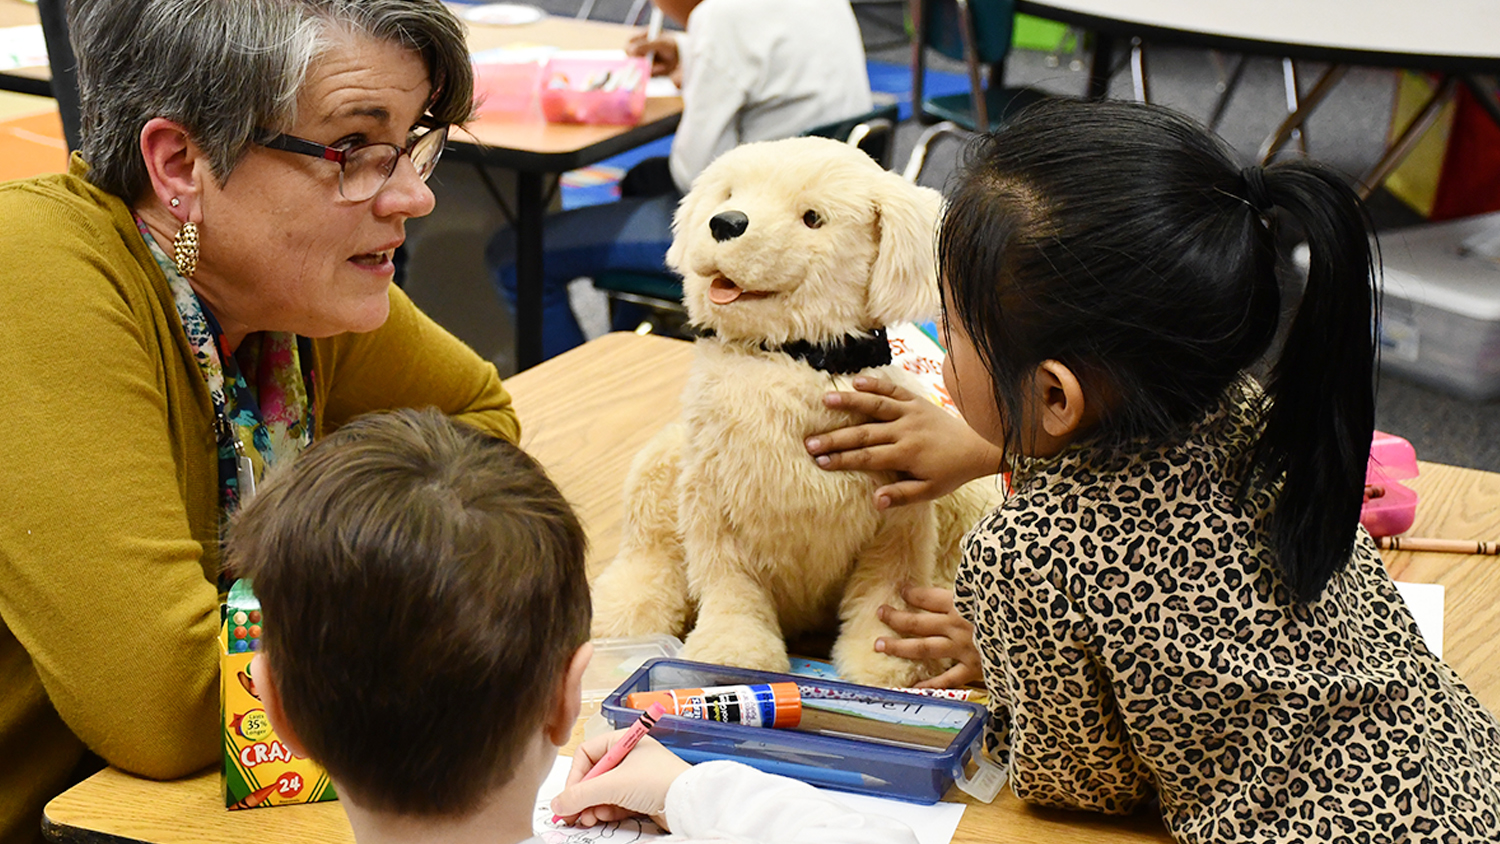 A teacher showing students a robotic dog